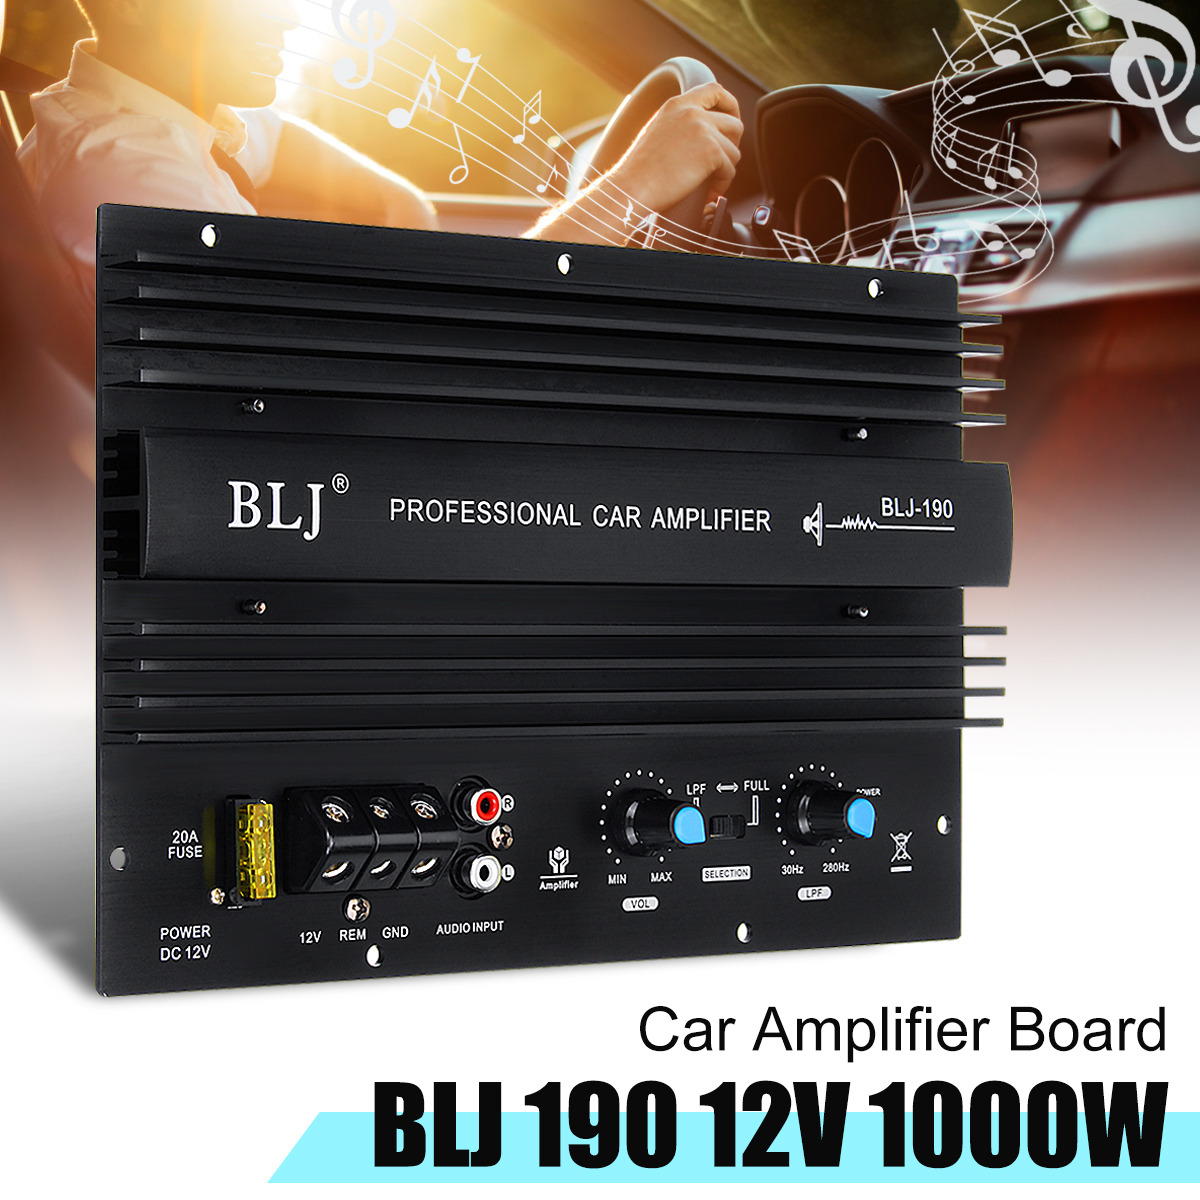 1000w Power Amplifier Driver Pcb Layout Technology T Details About Sub 150w Subwoofer Board Kit 2sa1943 2sc5200 12v 105dba Mono Car Audio High Amp Powerful Bass Connection